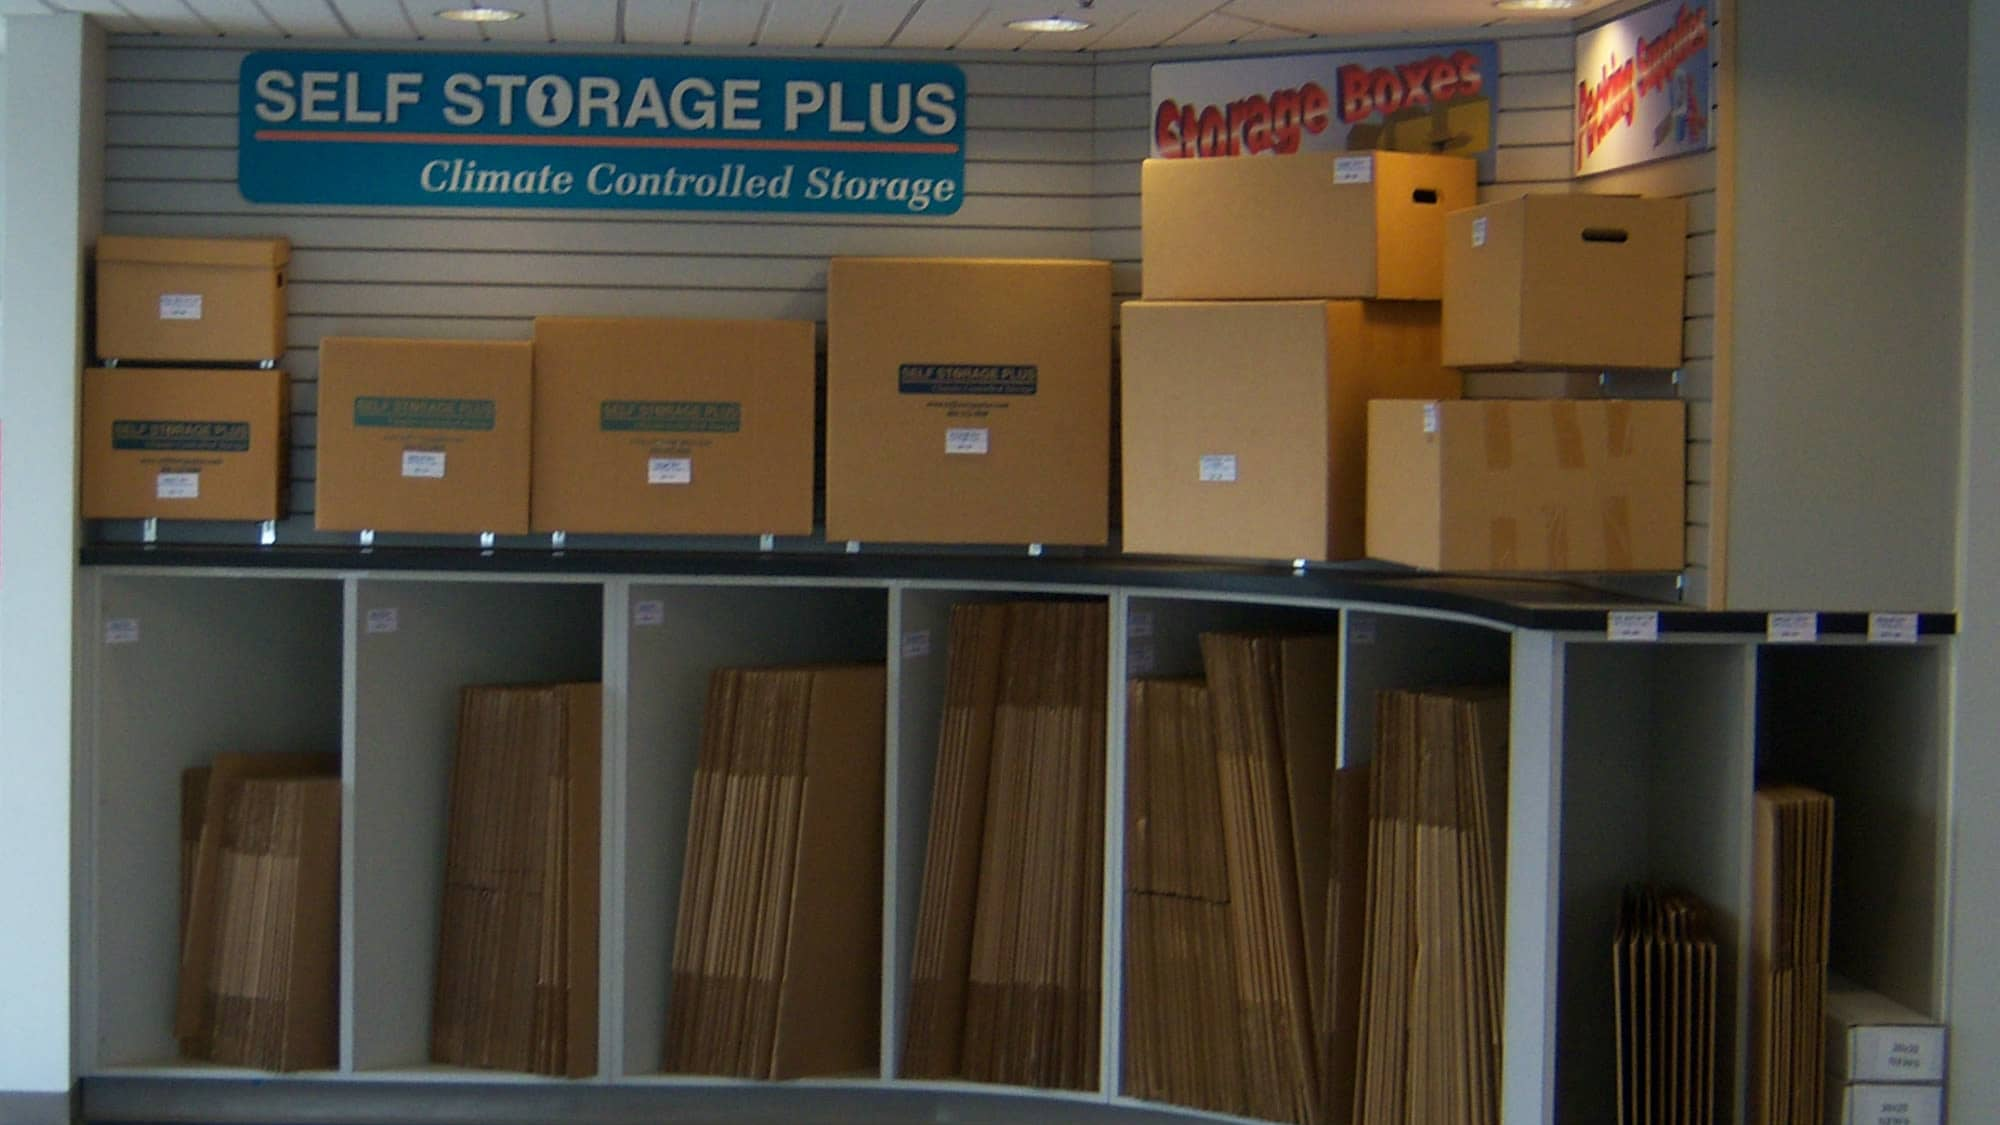 Moving and packing supplies at Self Storage Plus in Manassas, VA